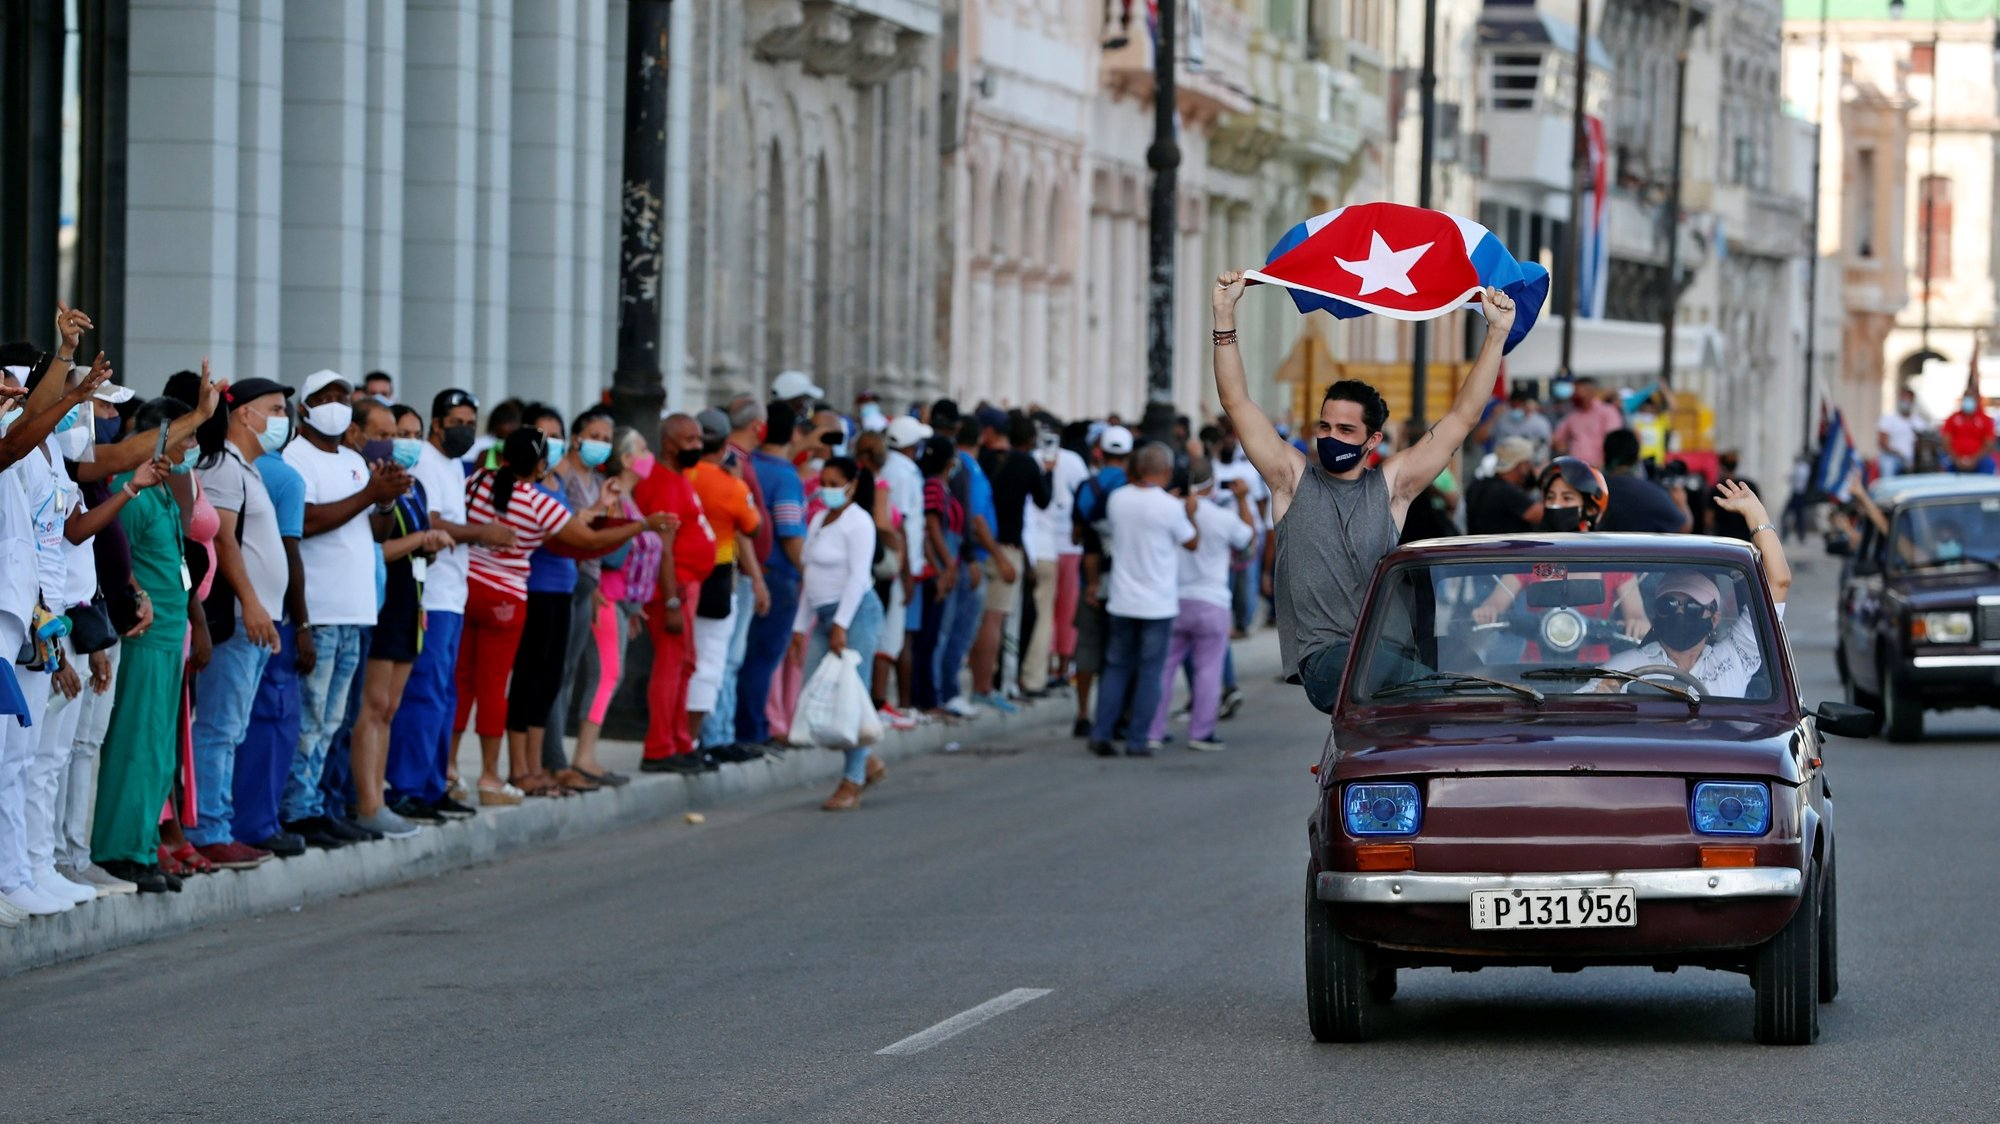 epa09398551 A person waves a Cuban flag during a march in support of the Cuban revolution through the Malecon area in Havana, Cuba, 05 August 2021. Cubans took to the streets in Cuba on 11 July to protest the government response to the COVID-19 pandemic, shortages of medicines and basic commodities, and decliing infrustructure on the island nation.  EPA/Ernesto Mastrascusa